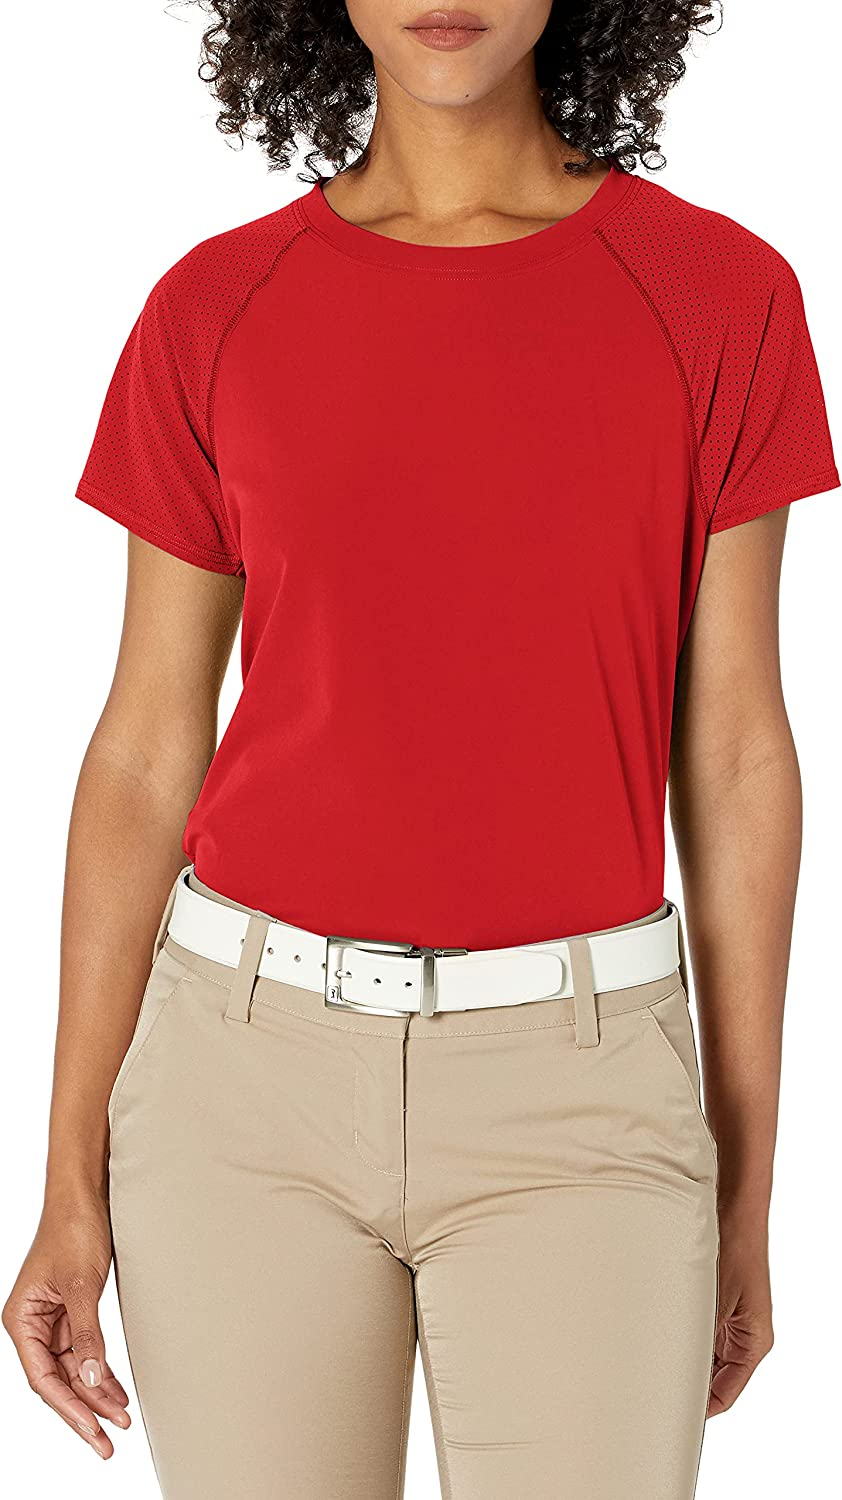 Cutter Buck Women's Max 67% OFF Short Sleeve Perforated Active Response Cr Now on sale